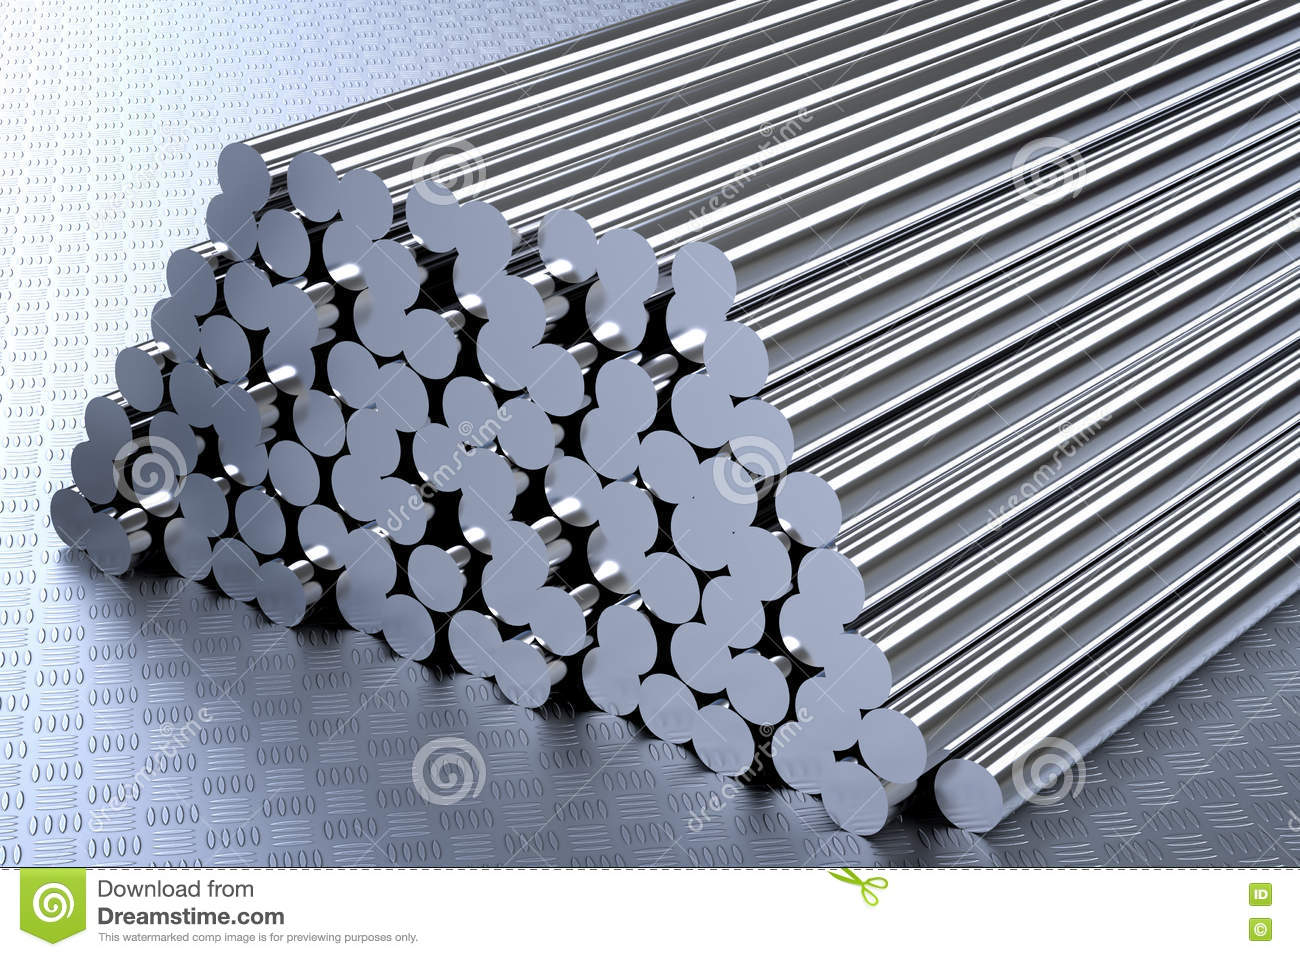 Heap of pipes